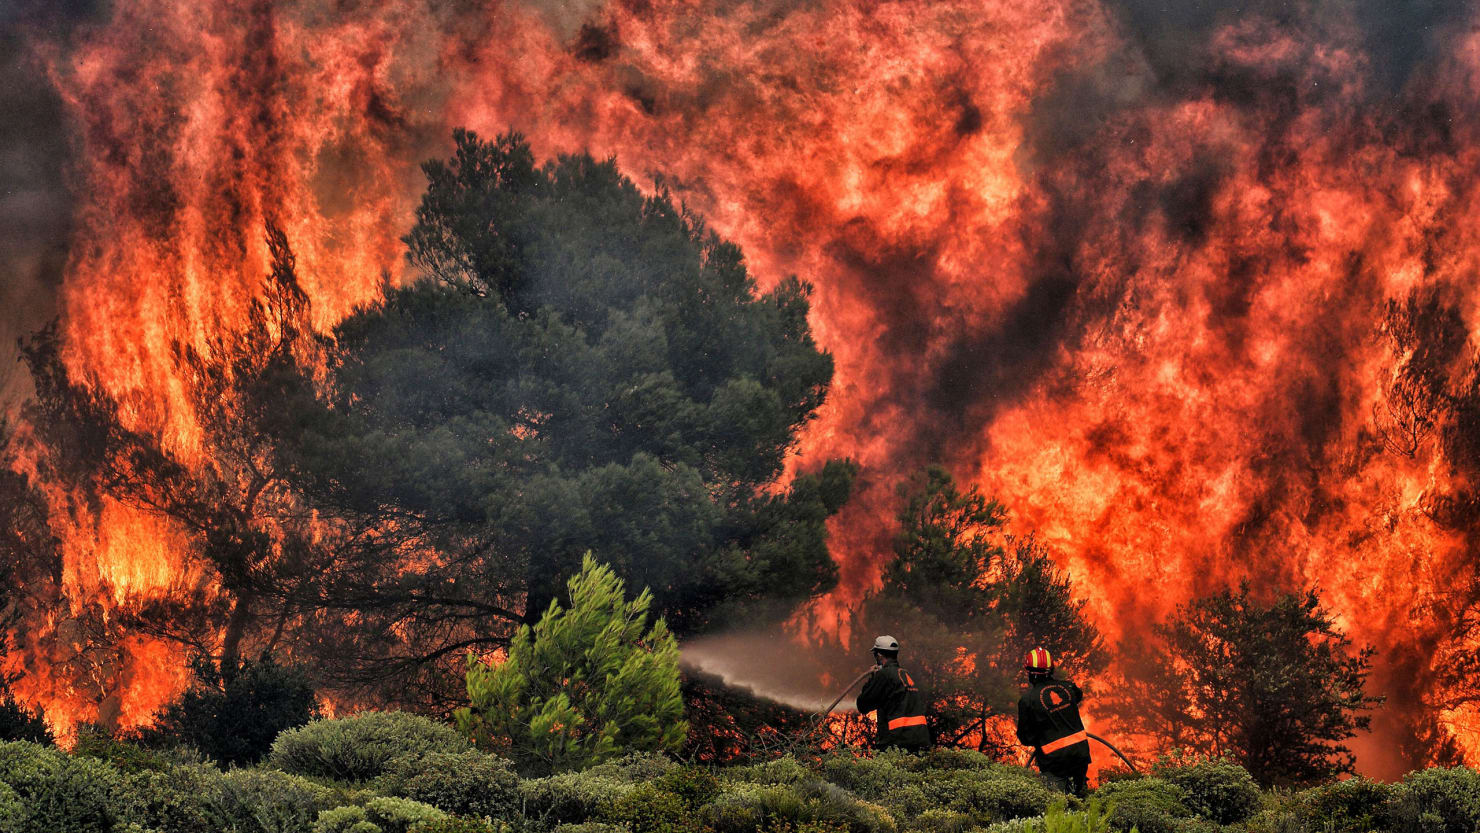 photo of wildfire in kineta near athens greece greek atmospheric blocking climate change global warming california wildfire weather meteorology